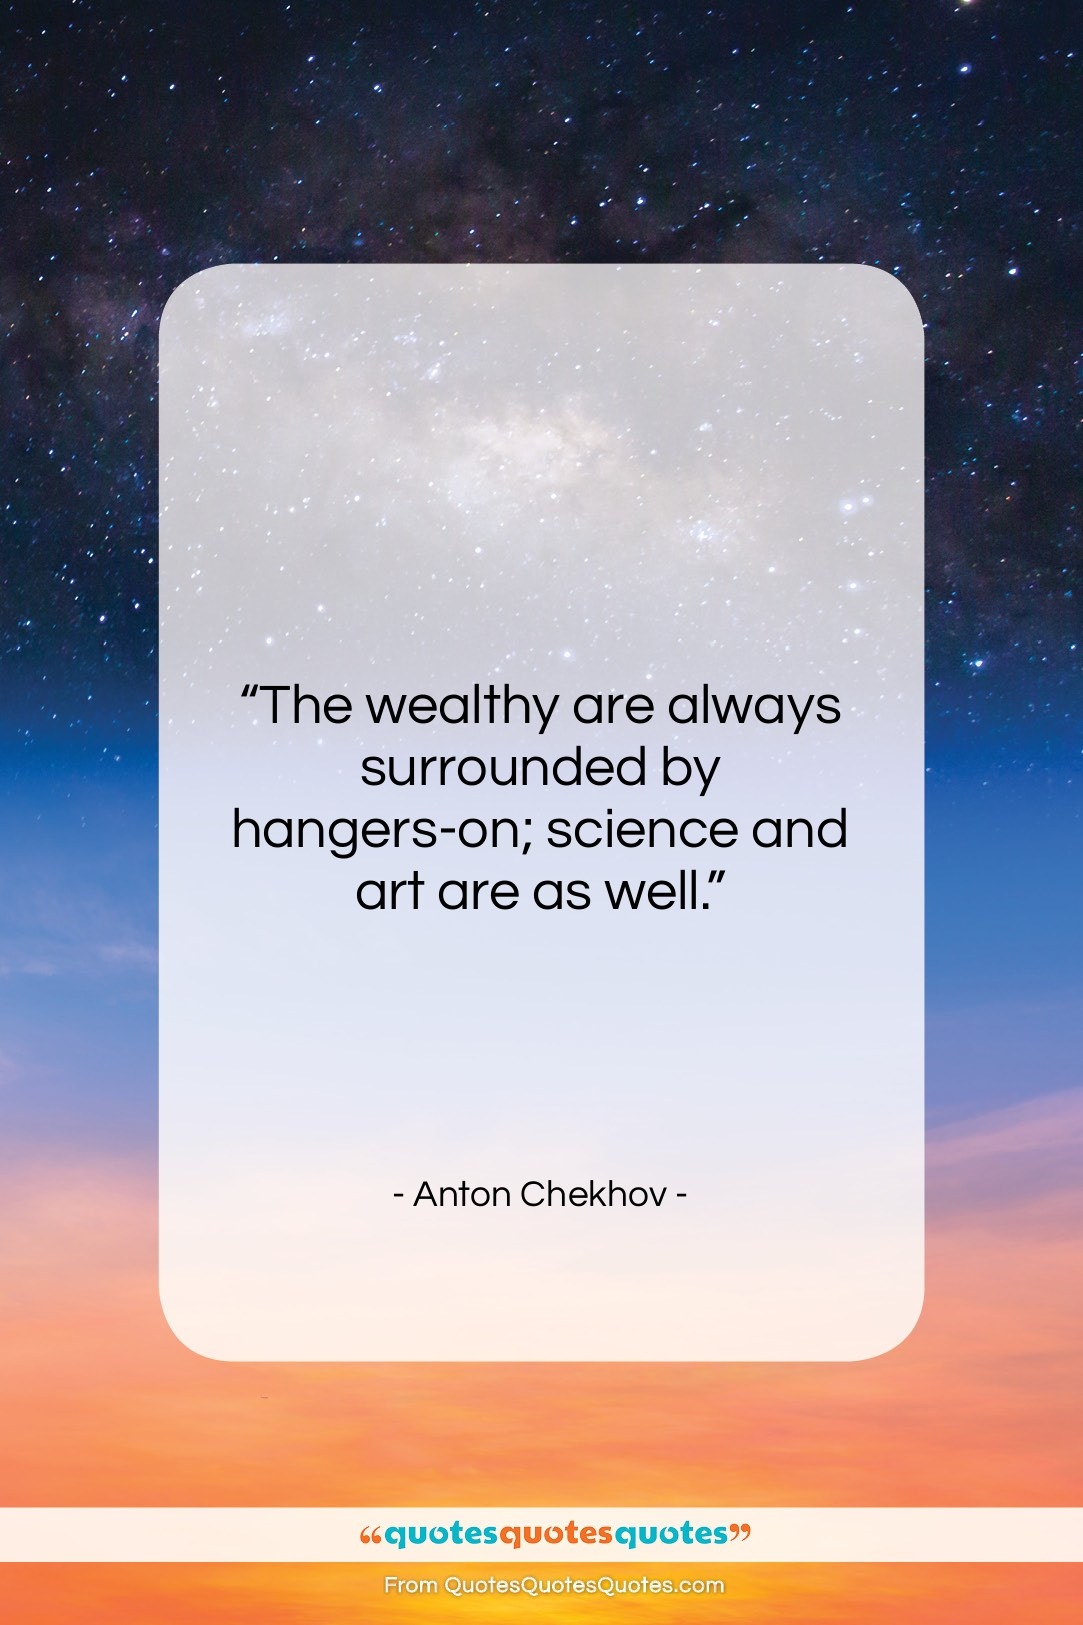 """Anton Chekhov quote: """"The wealthy are always surrounded by hangers-on;…""""- at QuotesQuotesQuotes.com"""